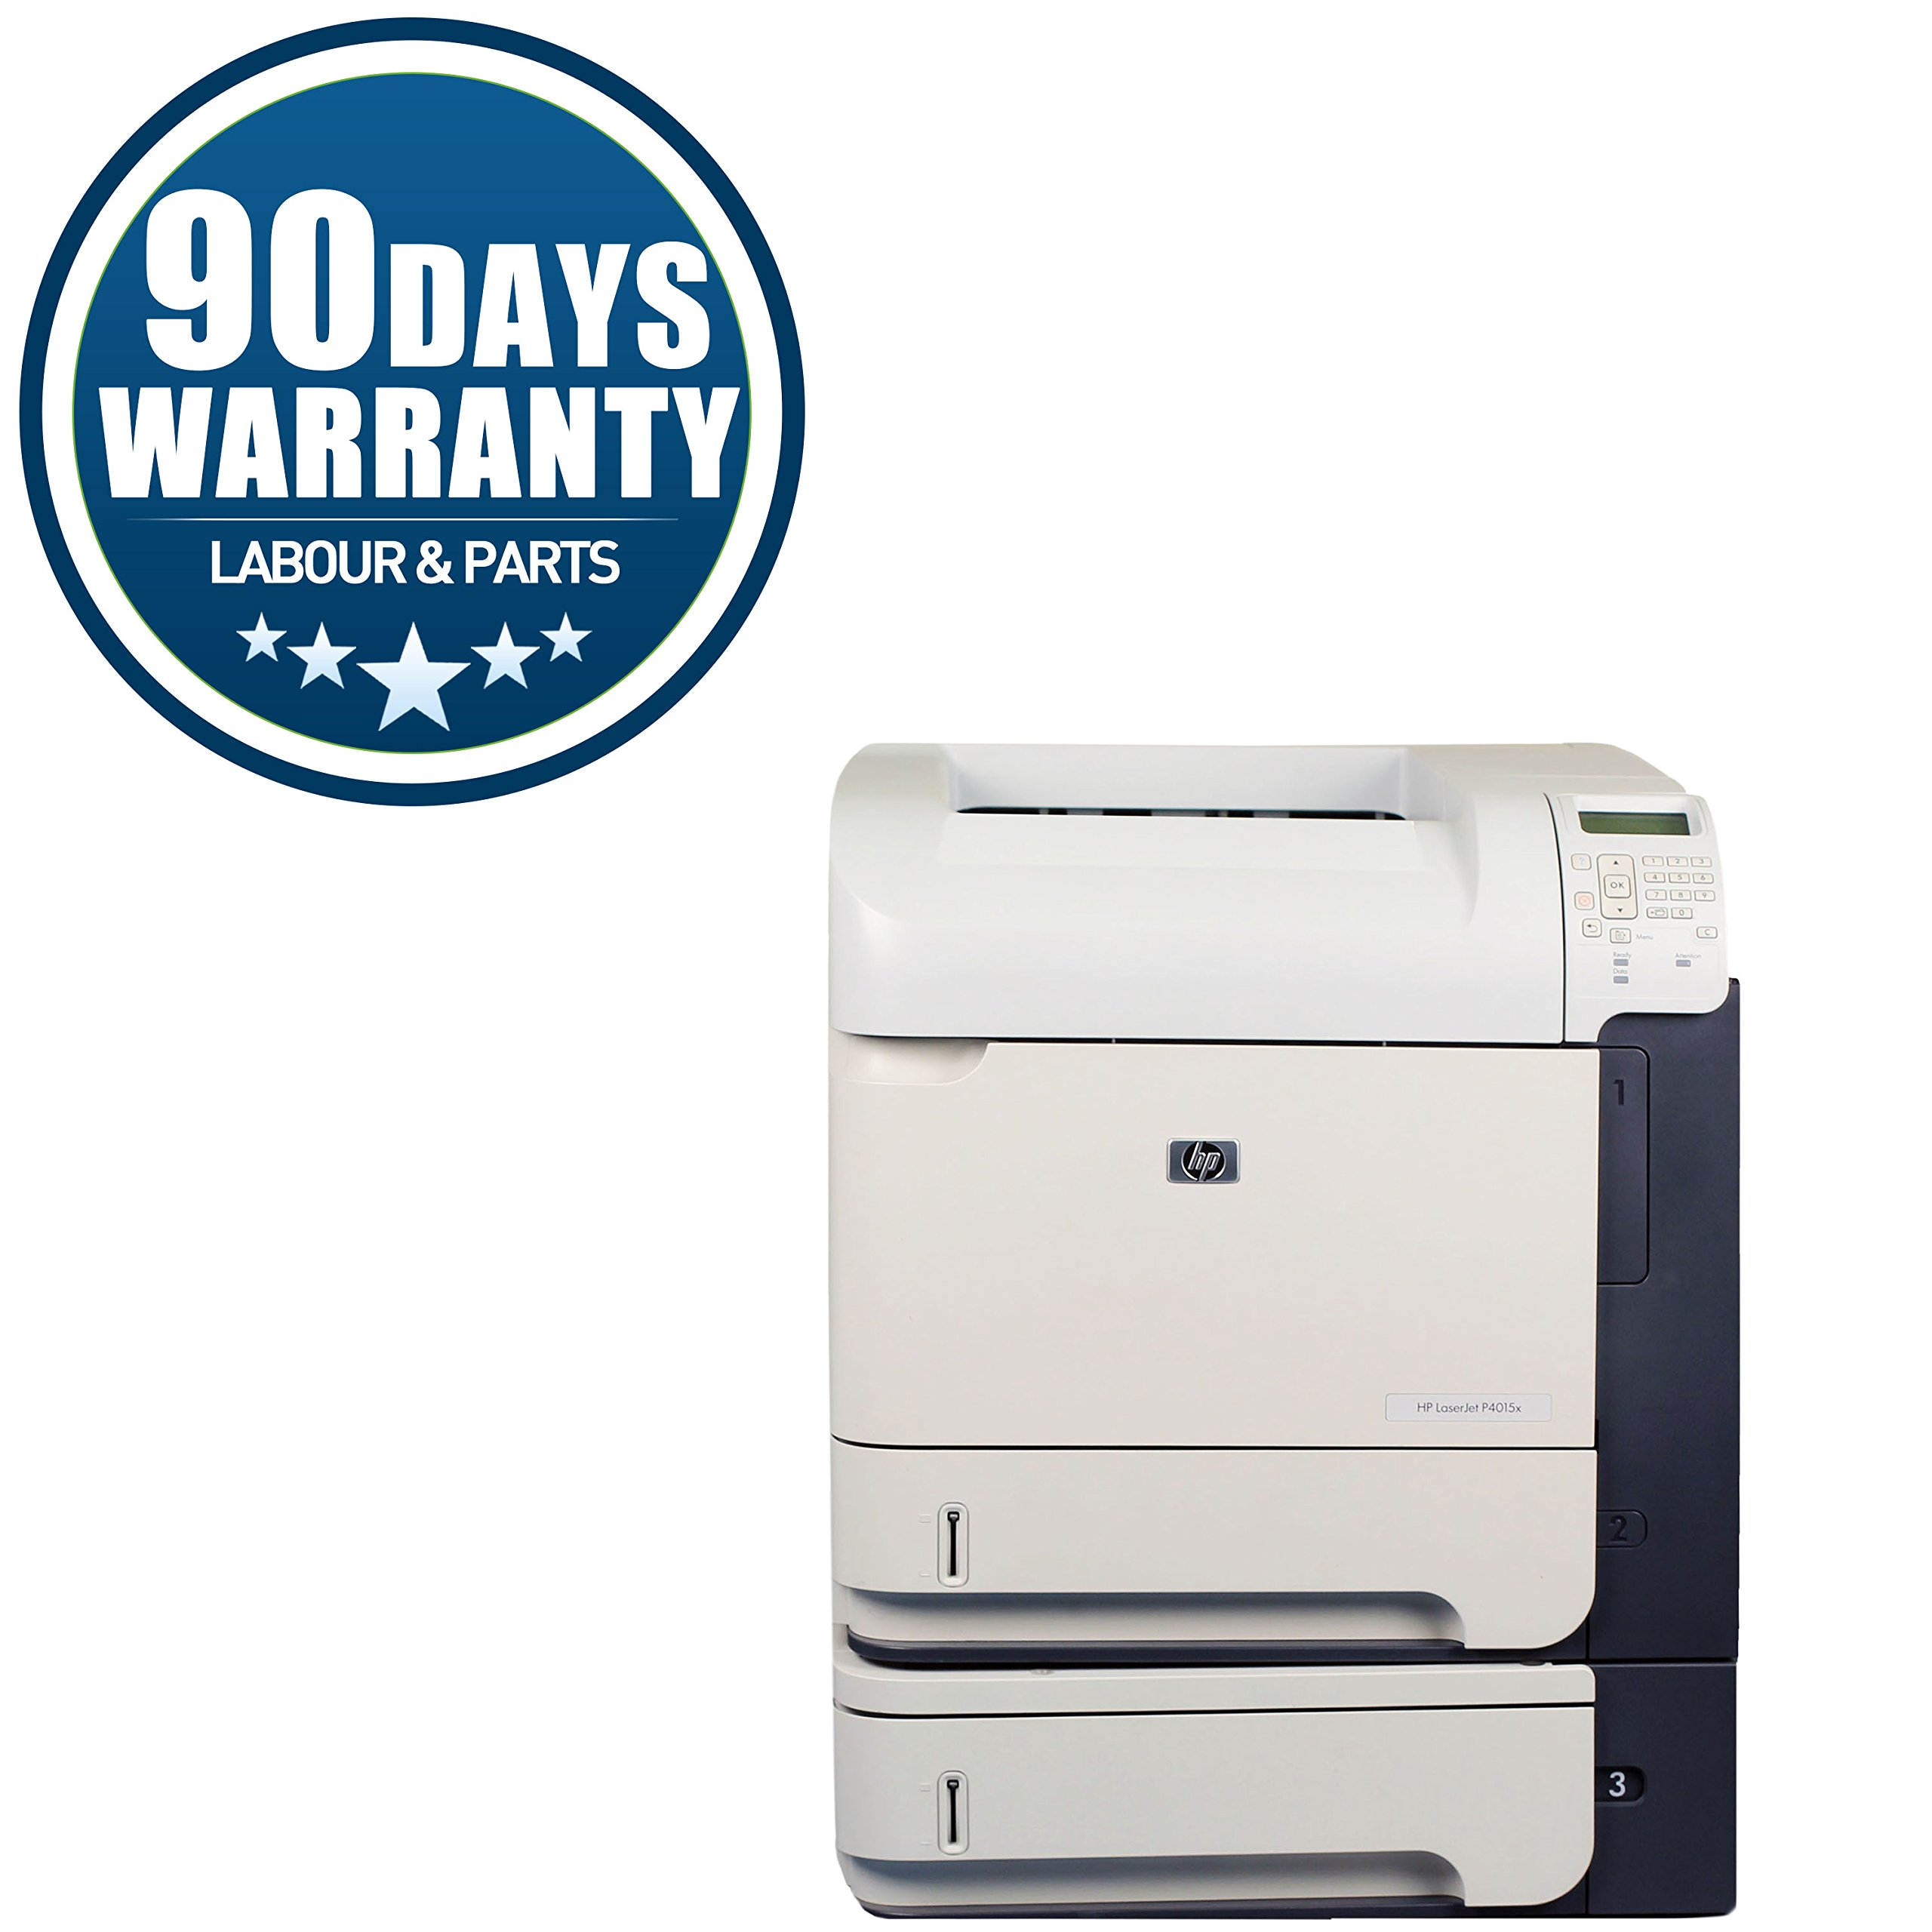 HP LaserJet P4015X,52PPM,DuPlexer,90 Days (Certified Refurbished) by AST Computer